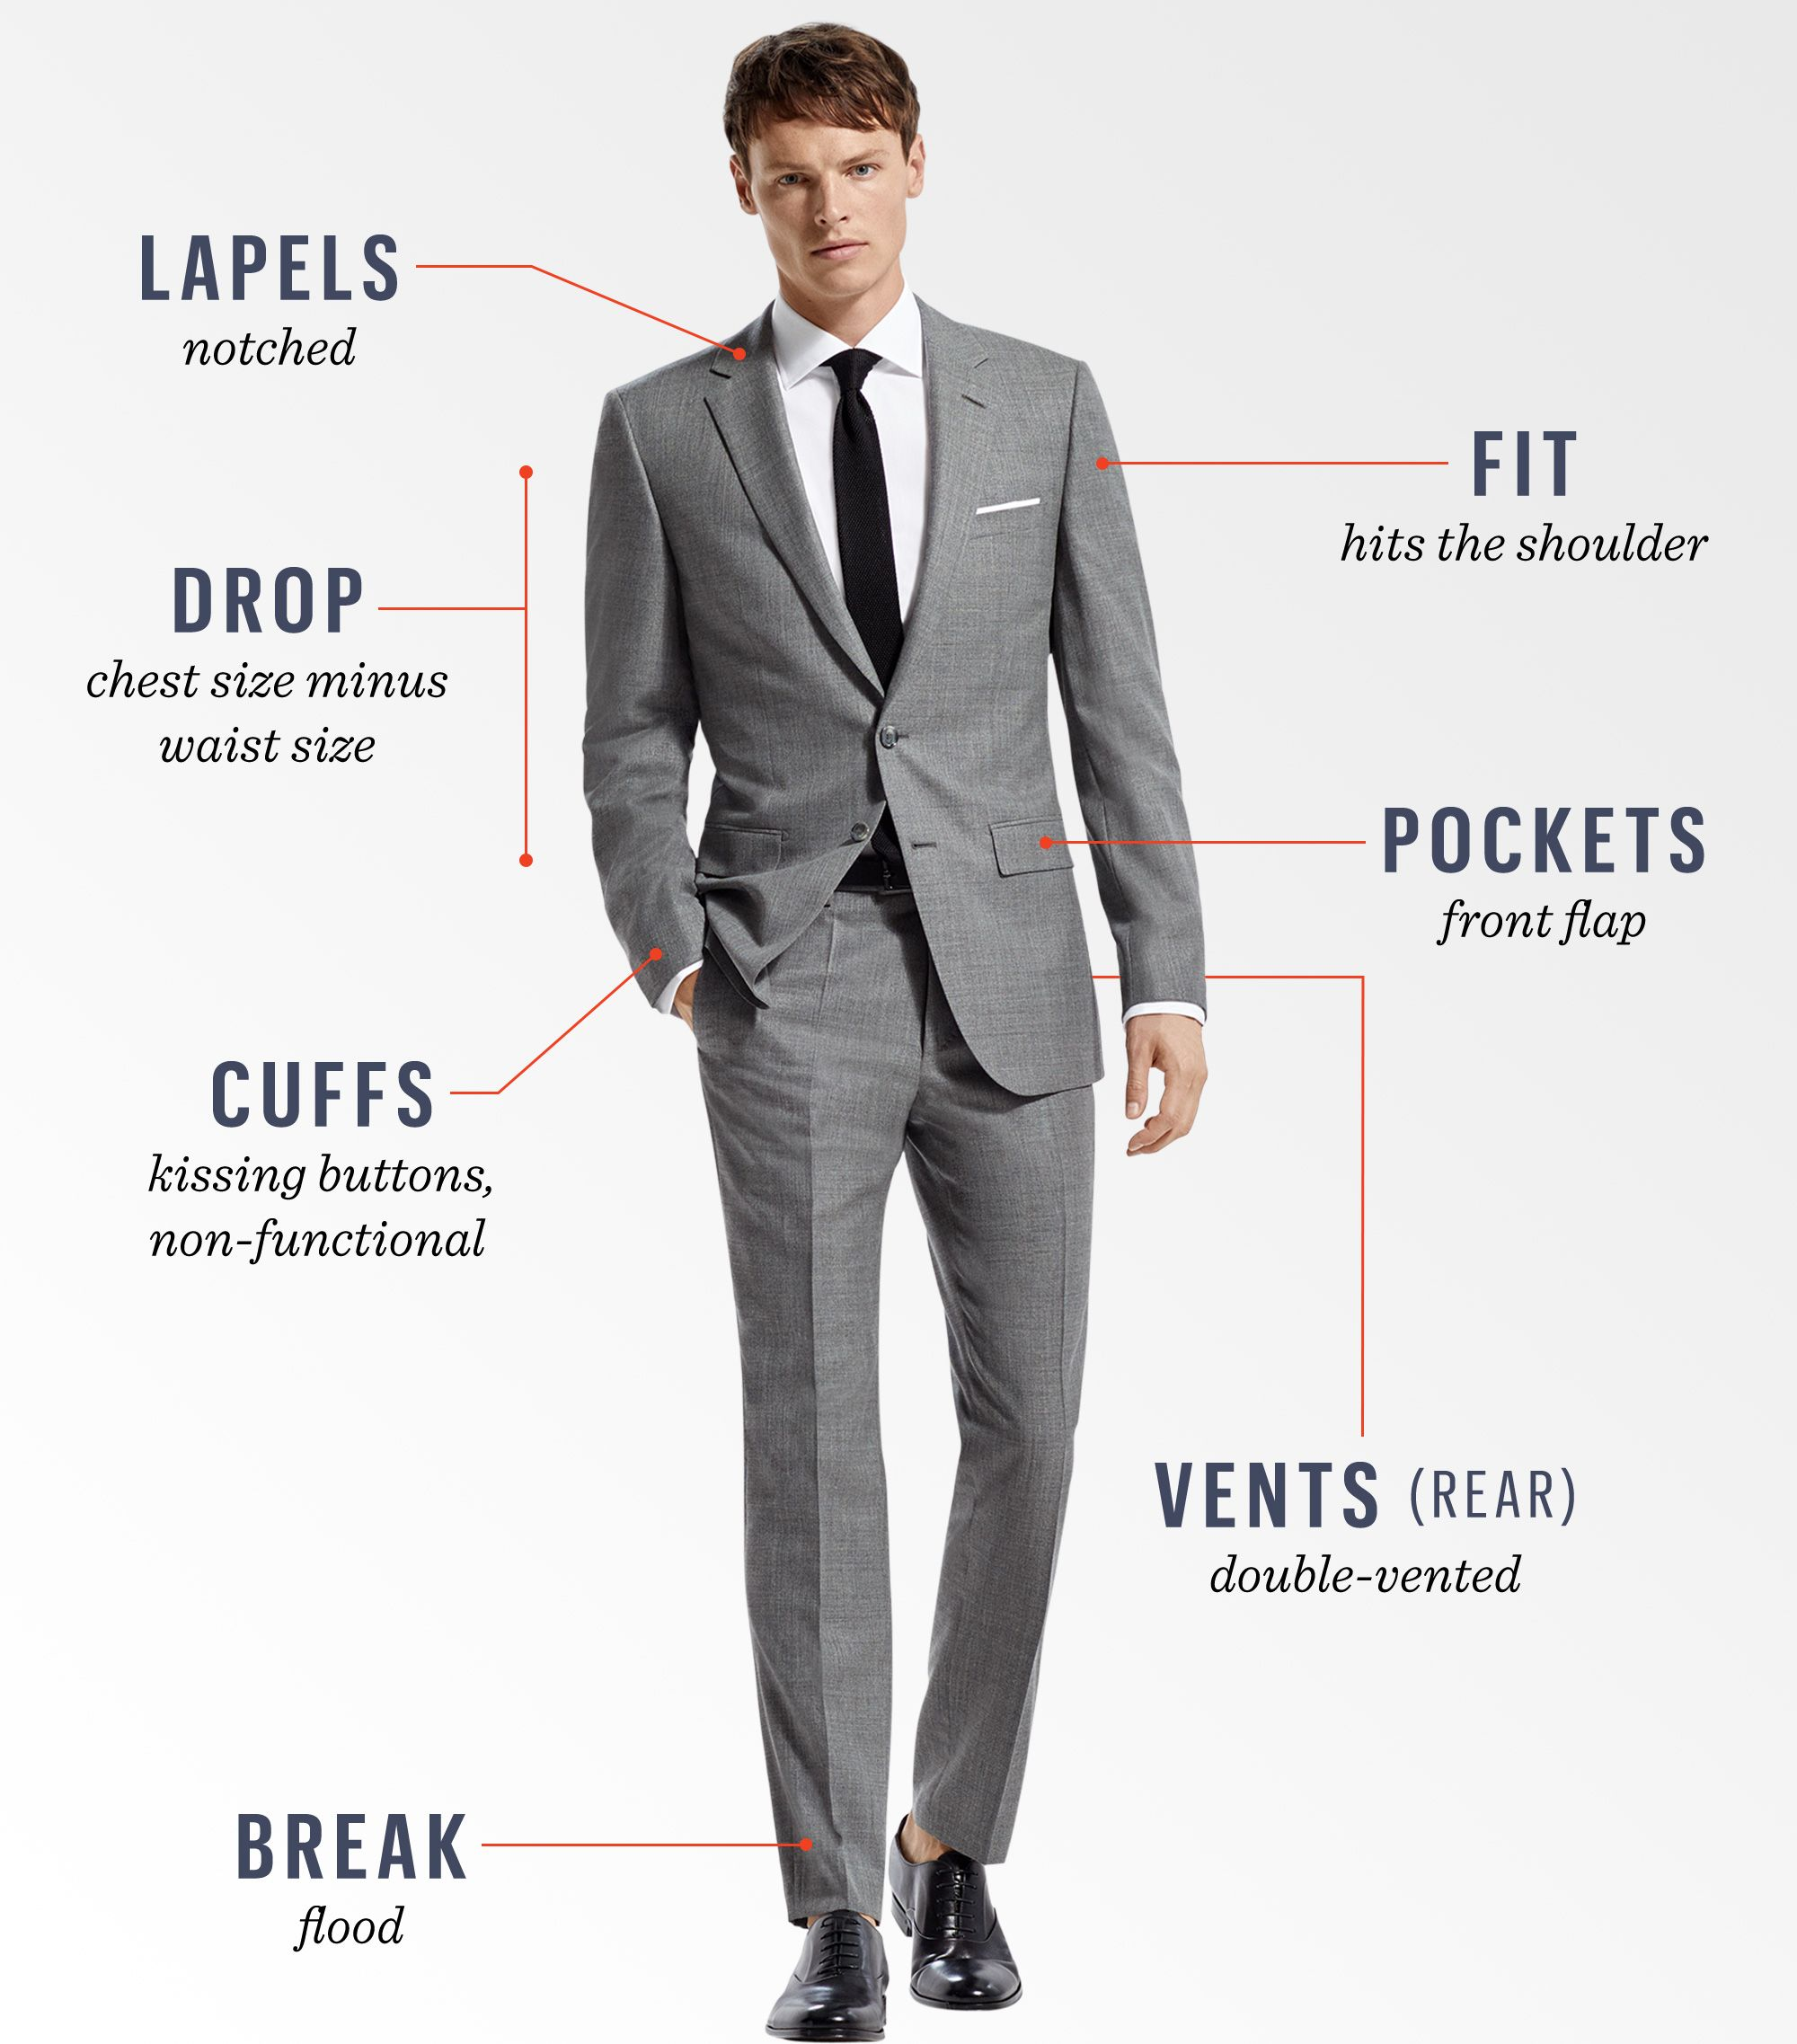 Here's Every Part of a Suit You Need to Know